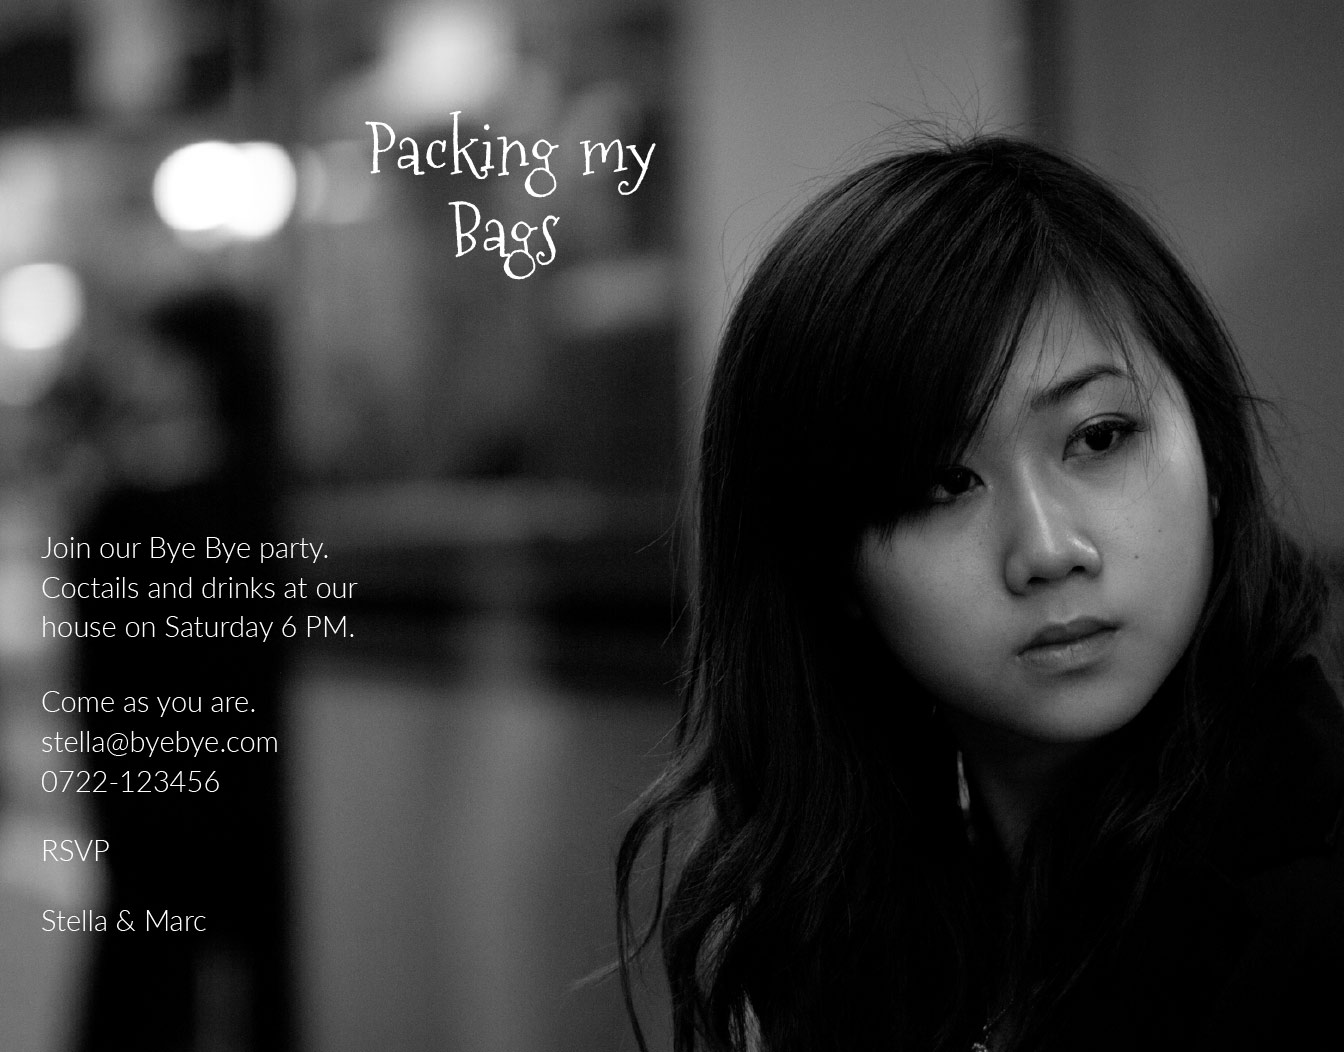 Asian girl representing black and white invitation